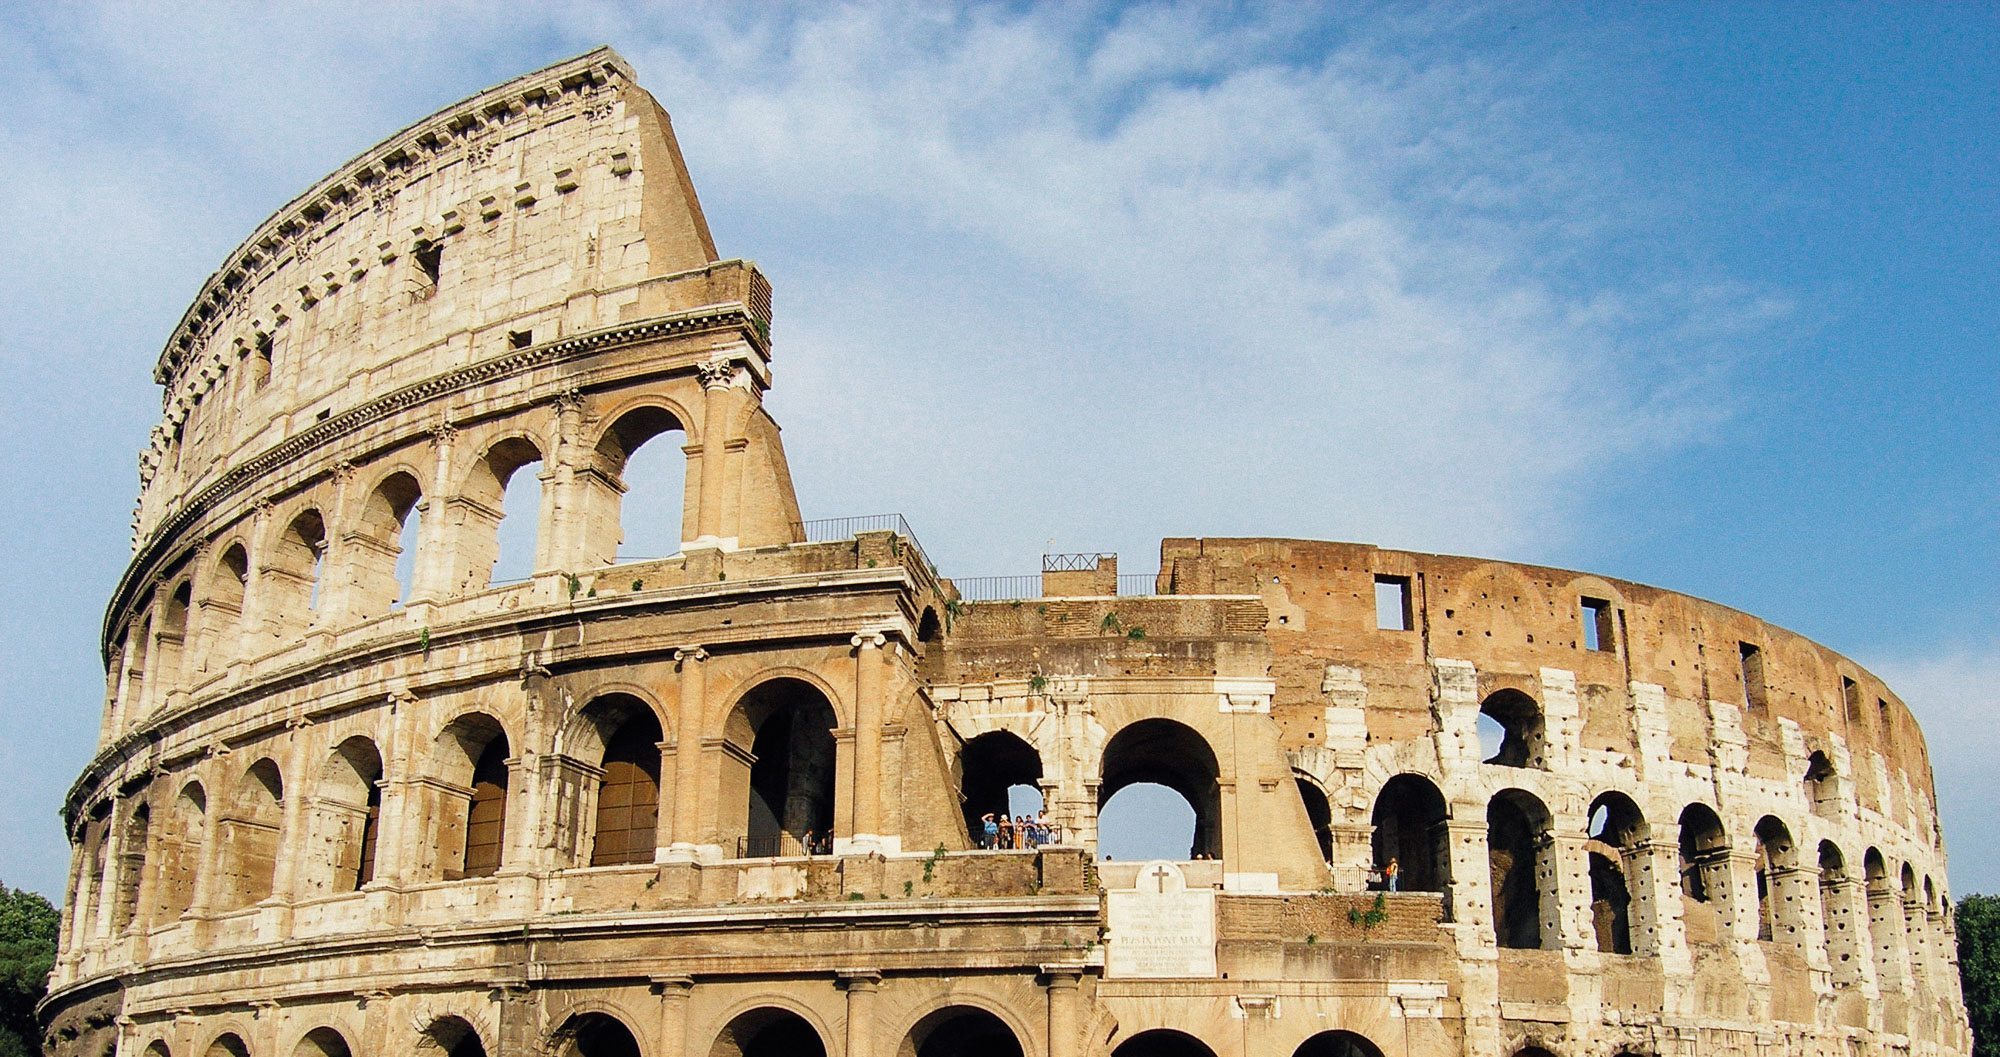 The Colosseum in Rome. Breathtaking, and must be seen by all who embark on a sports tour to Rome